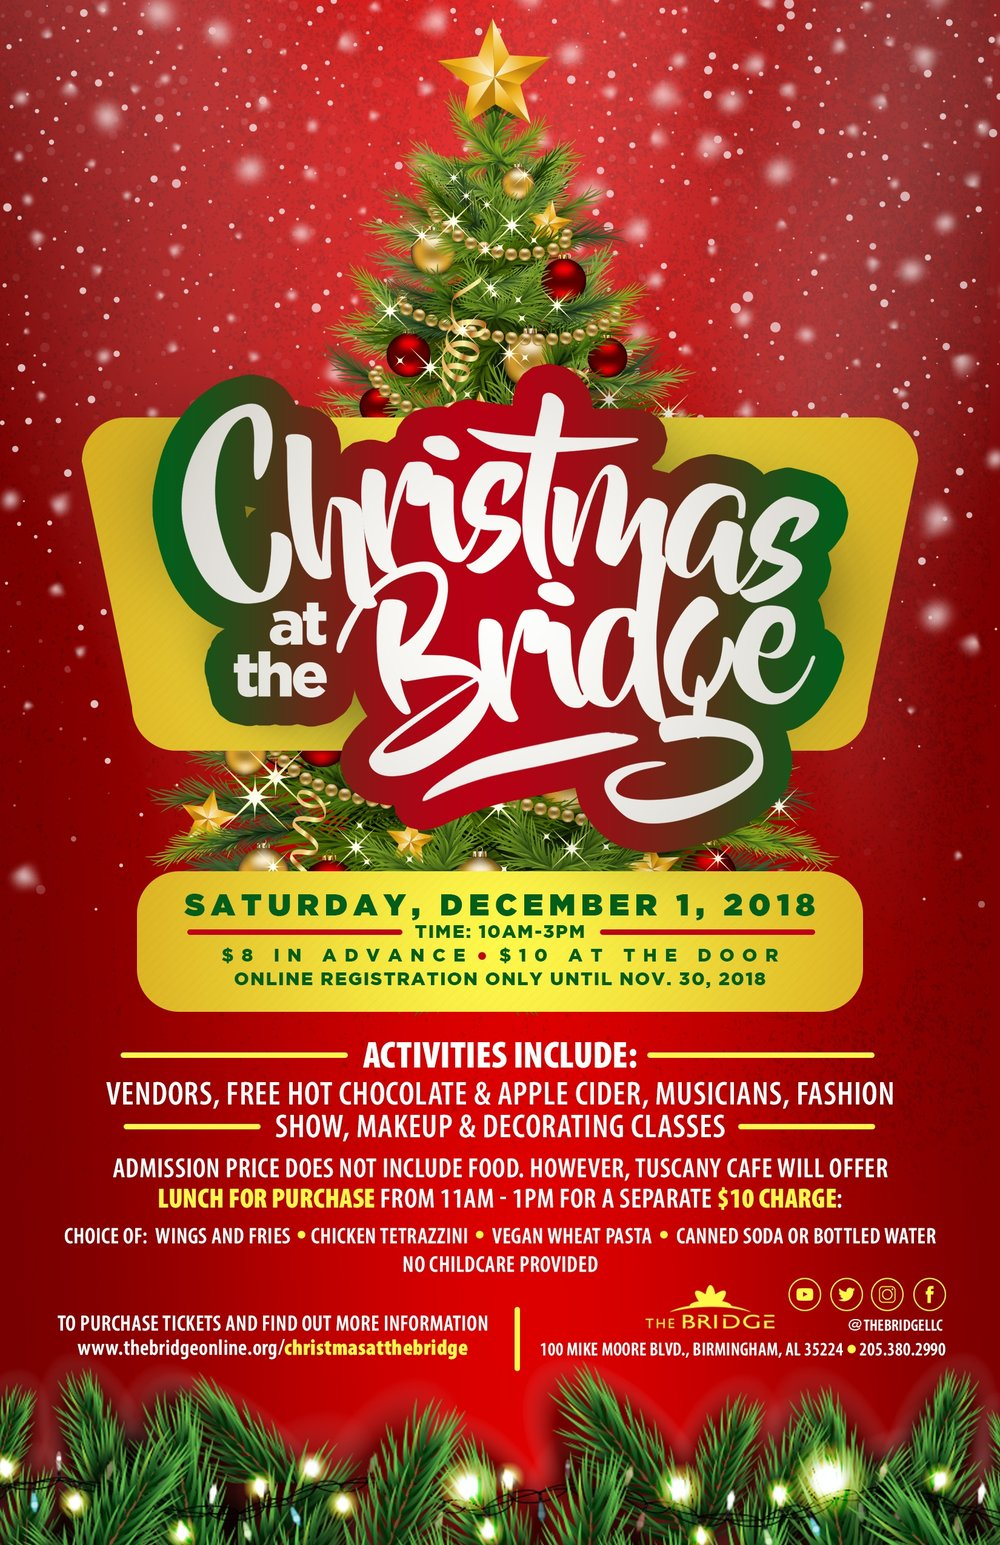 Christmas at the Bridge 2018 flyer v4.jpg